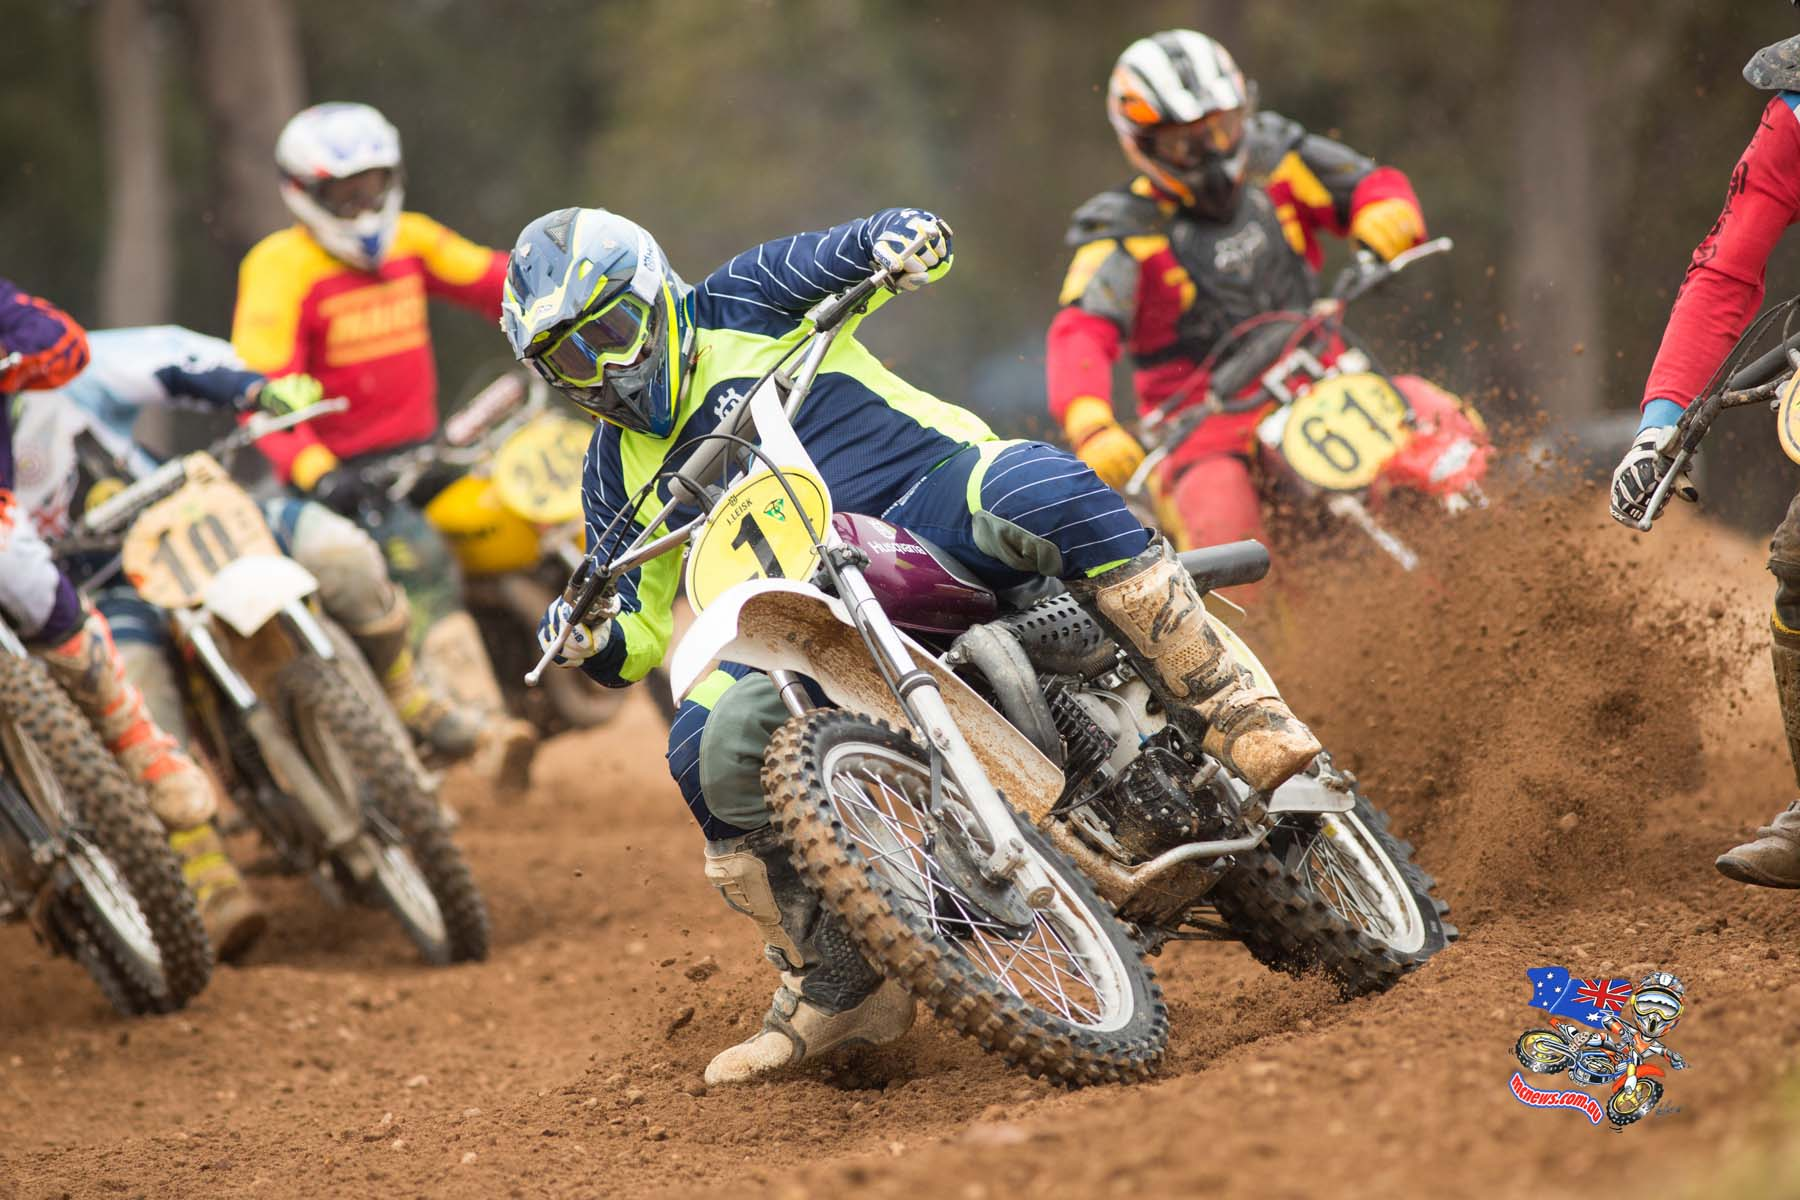 Jeff Leisk at the 2015 Australian Classic Motocross Championship